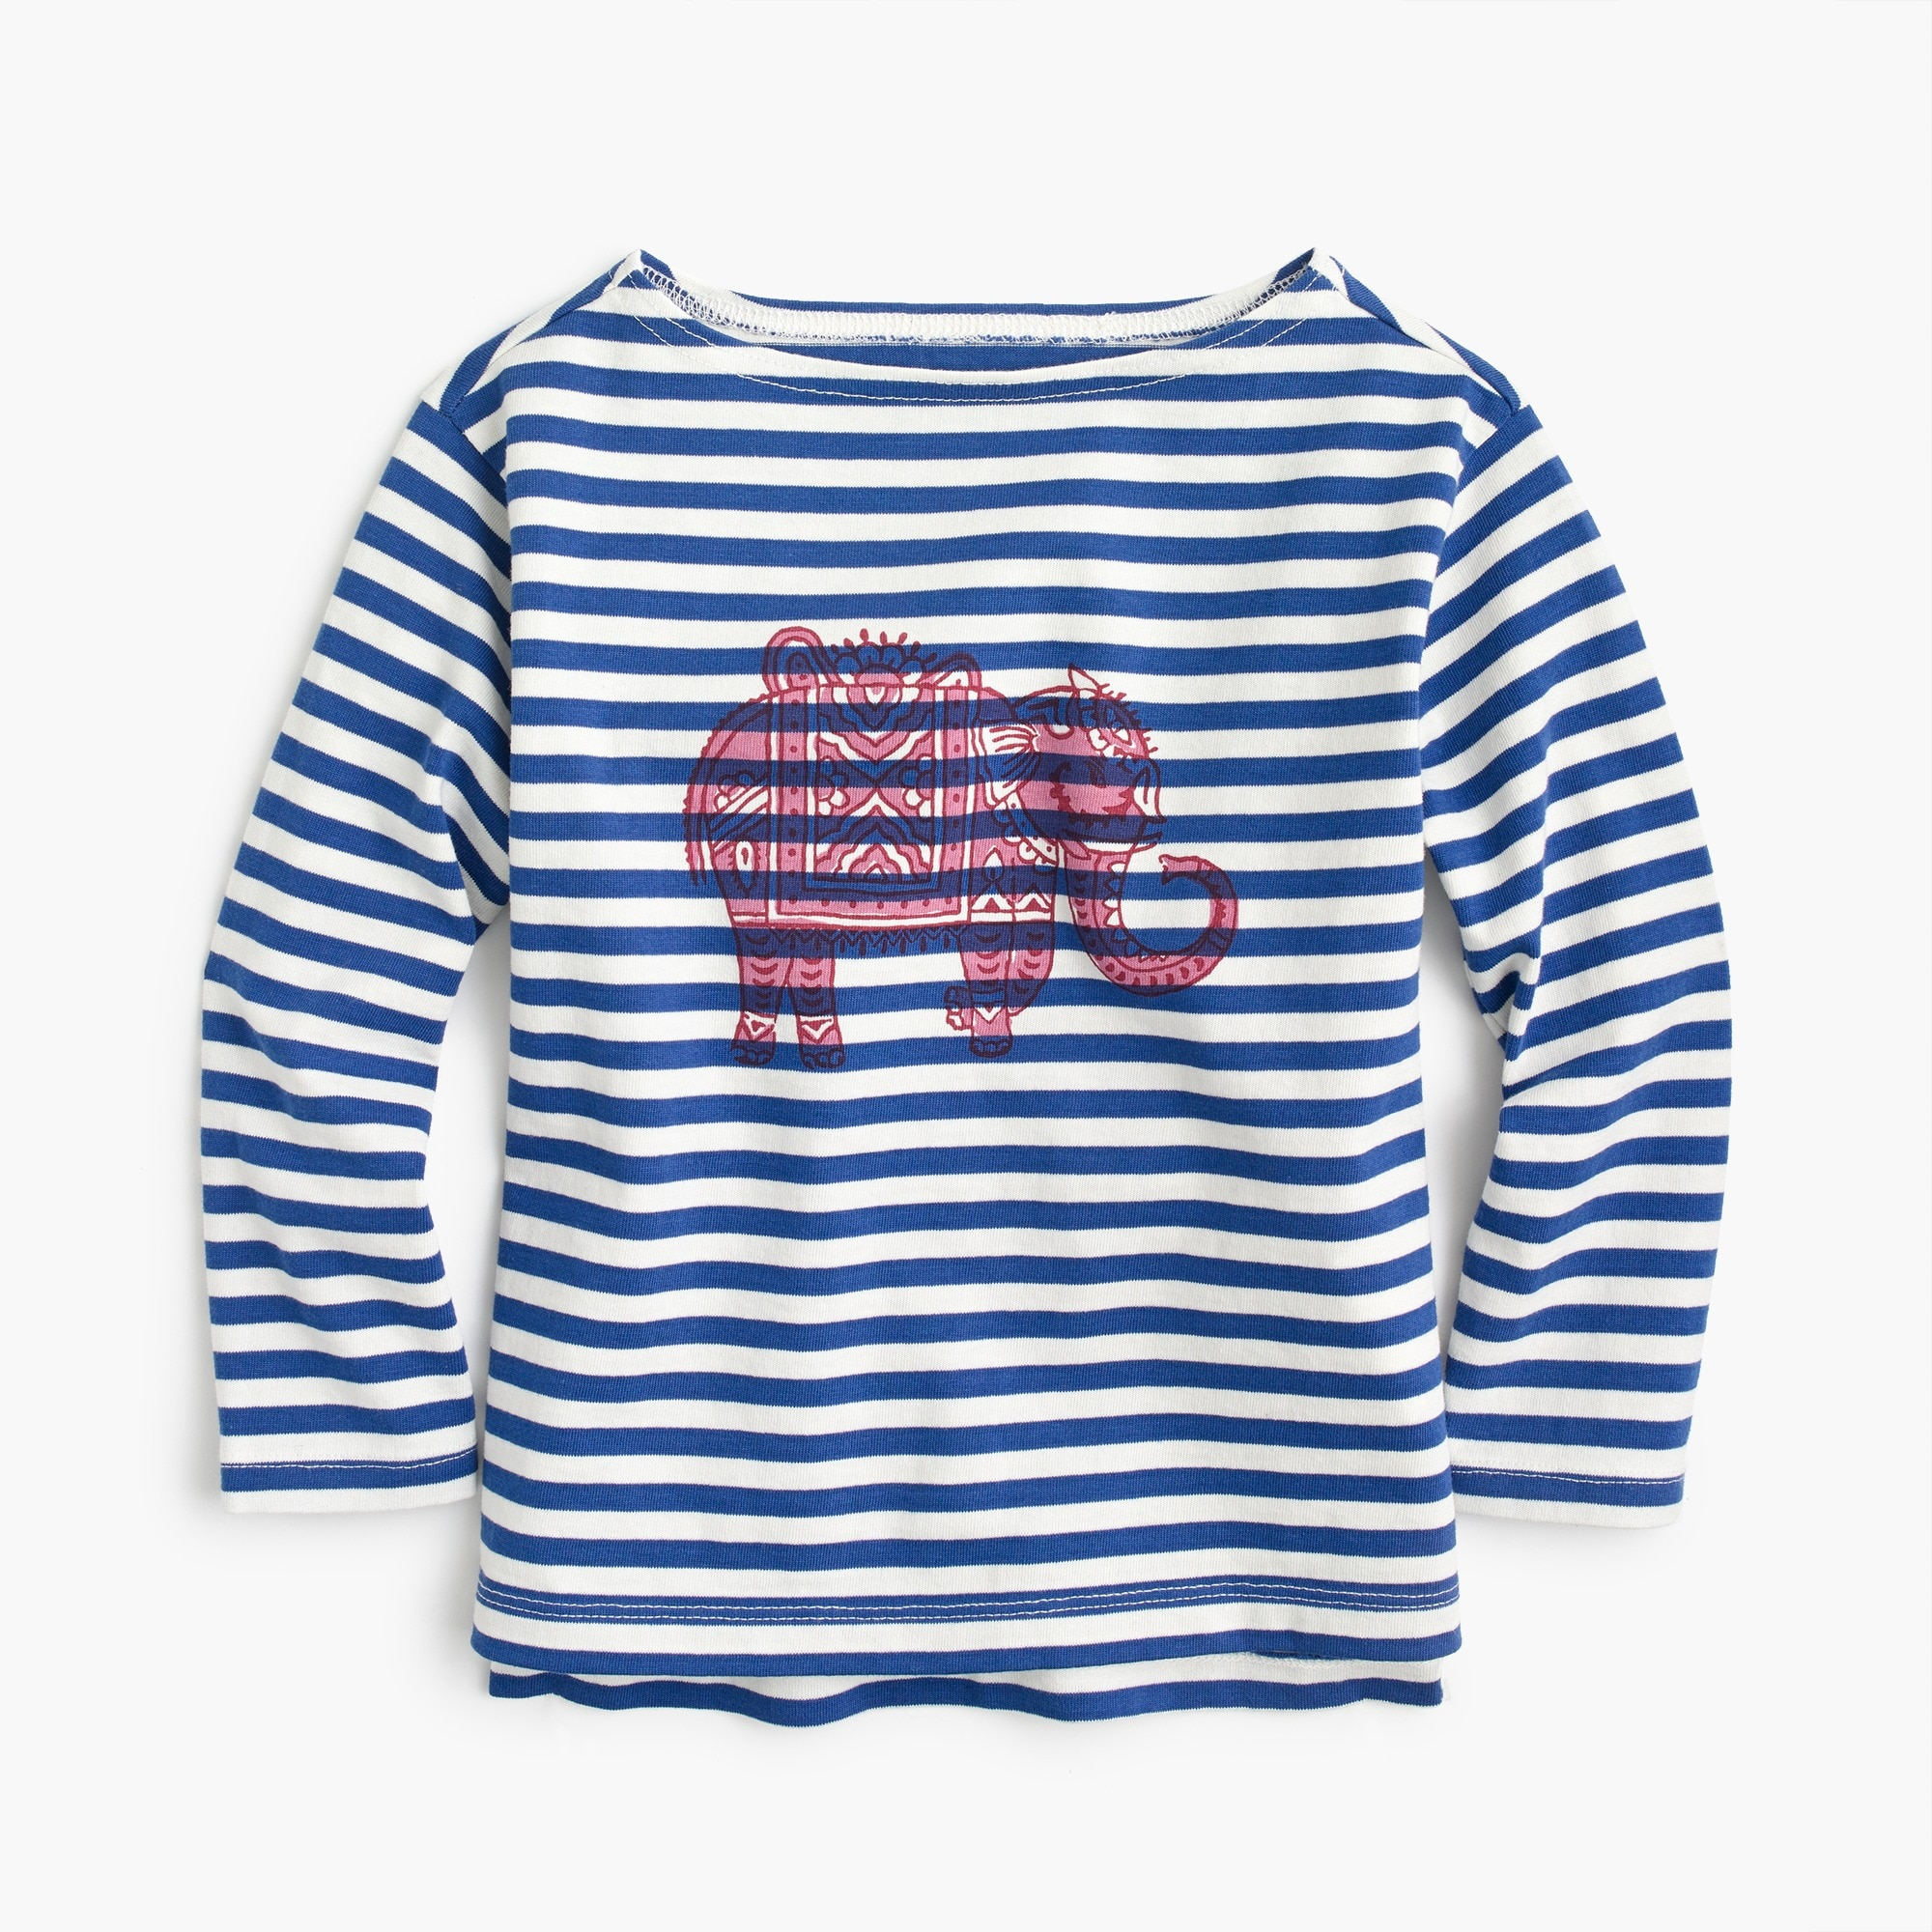 Girls' SZ Blockprints™ for crewcuts elephant-print T-shirt girl new arrivals c